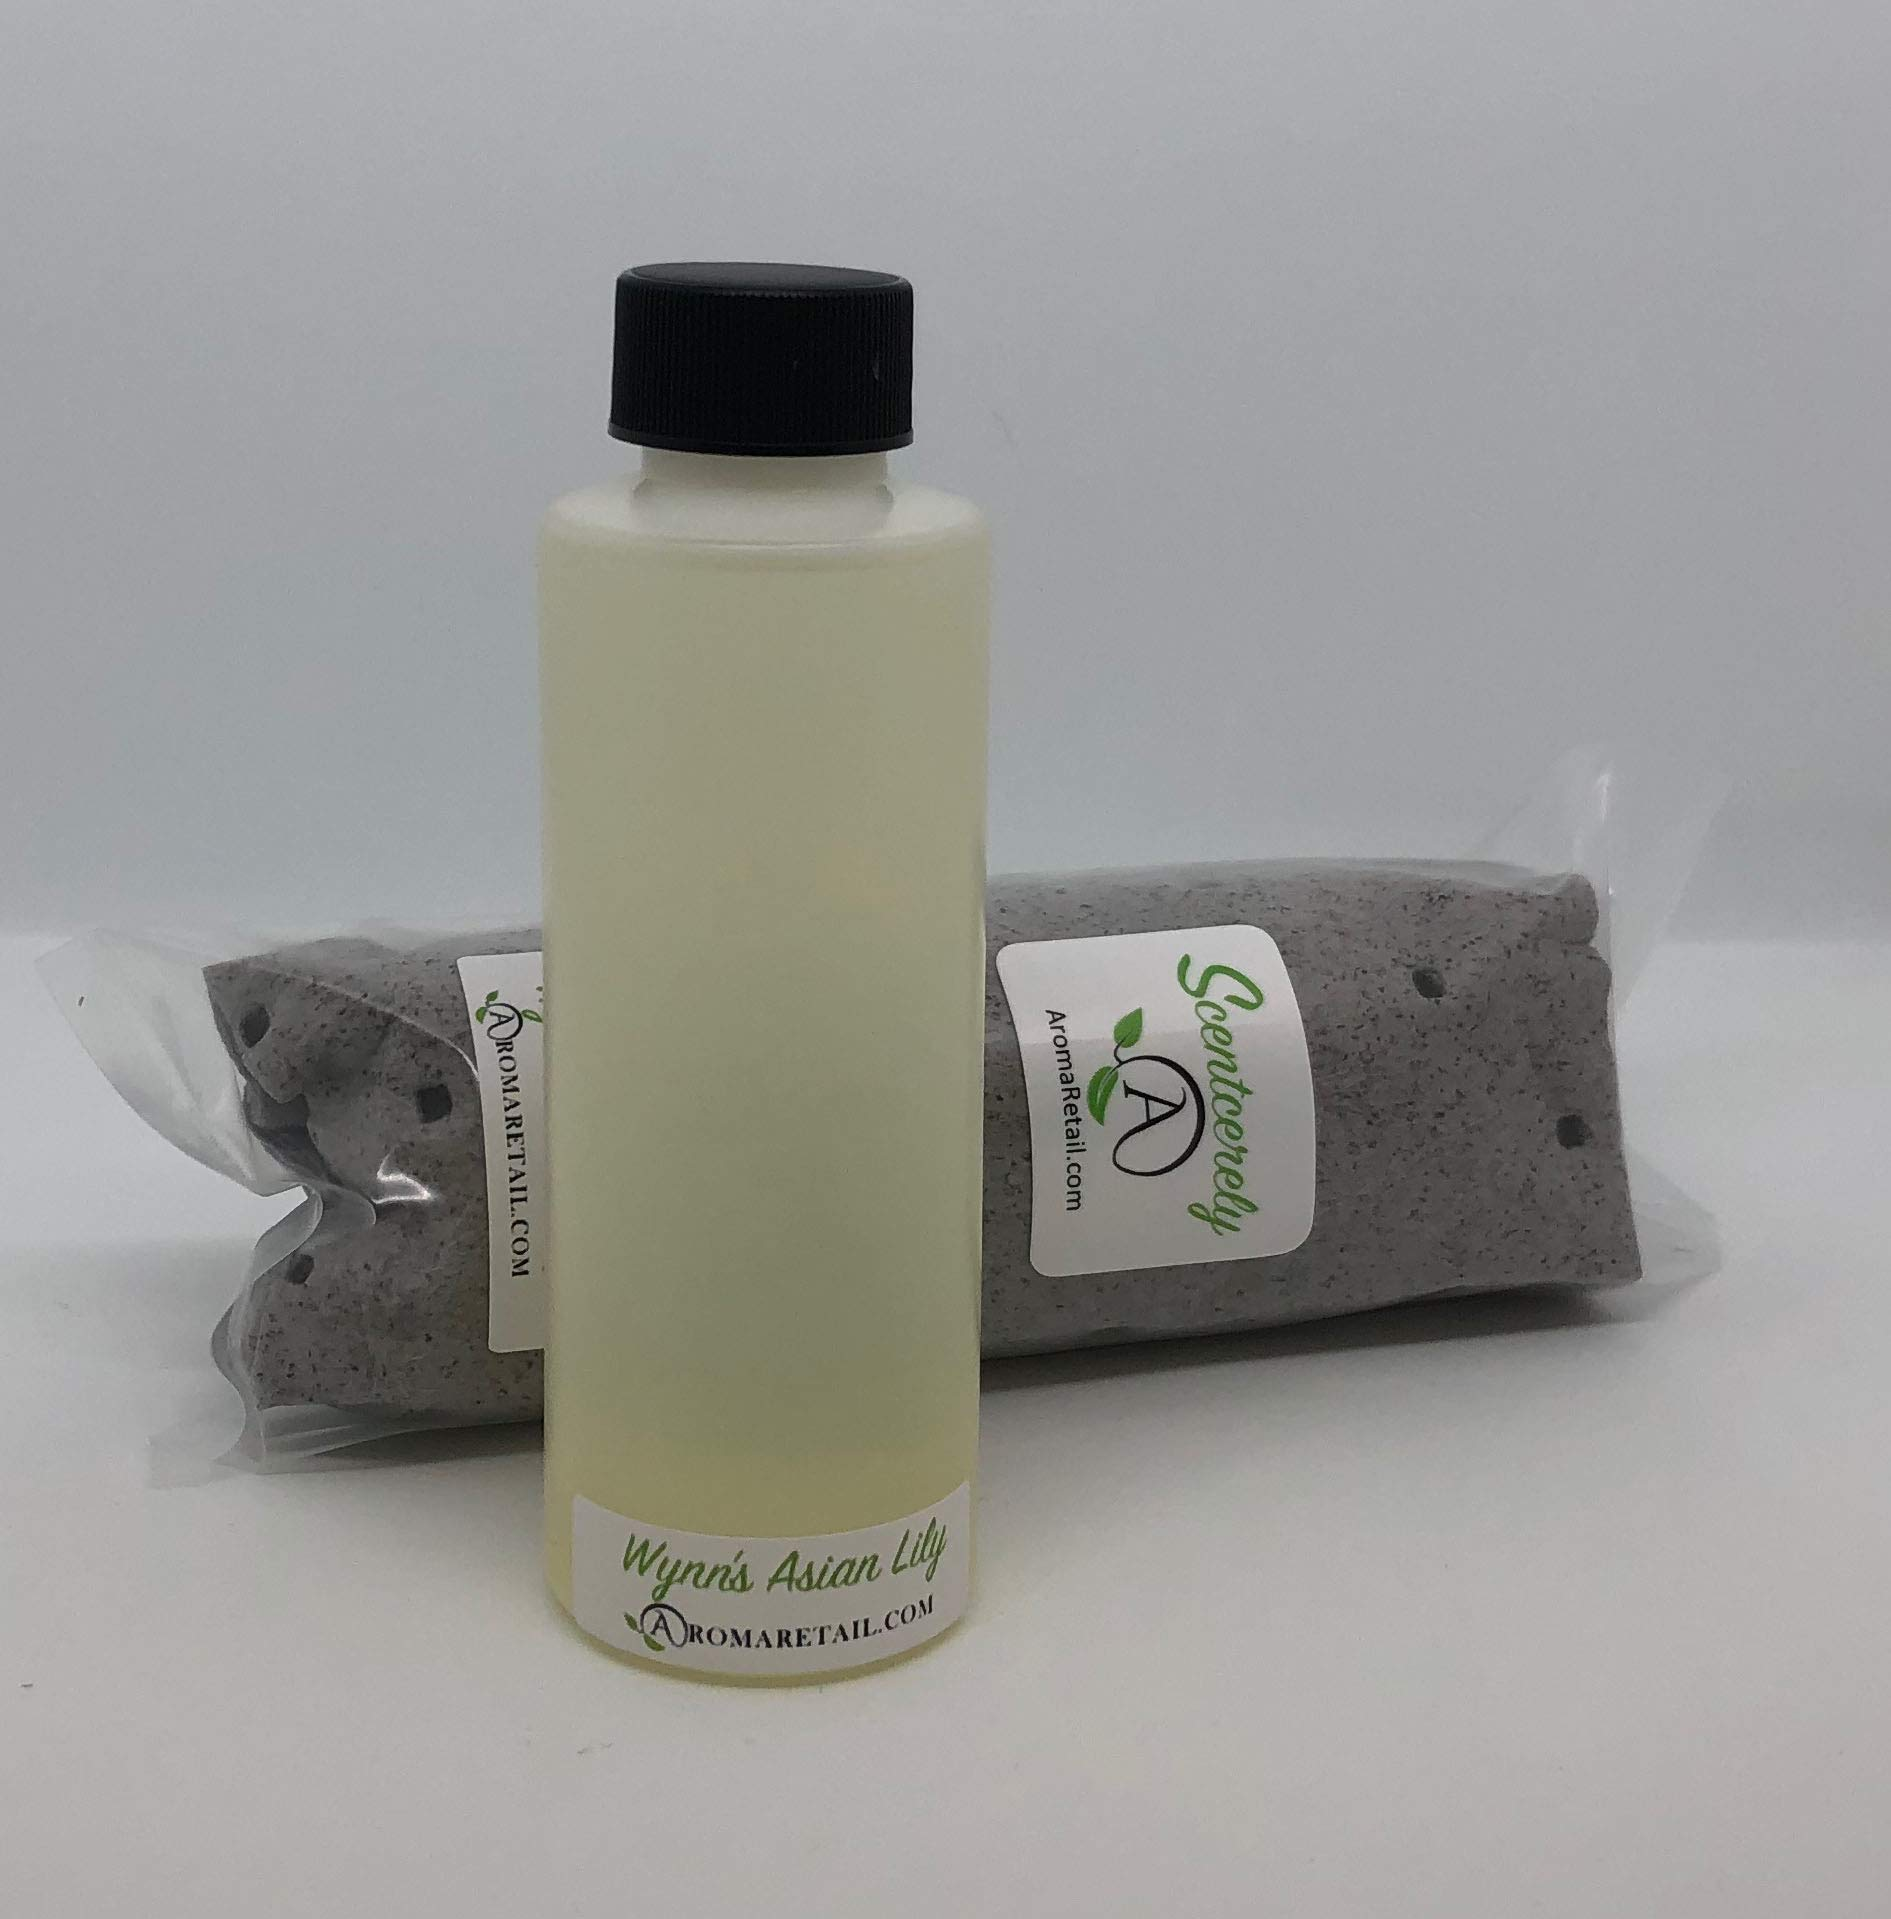 Scentcerely - Aroma Retail 4 oz Fragrance Oil Refill - Asian Lily, Experienced at The Wynn Hotel by Scentcerely - Aroma Retail